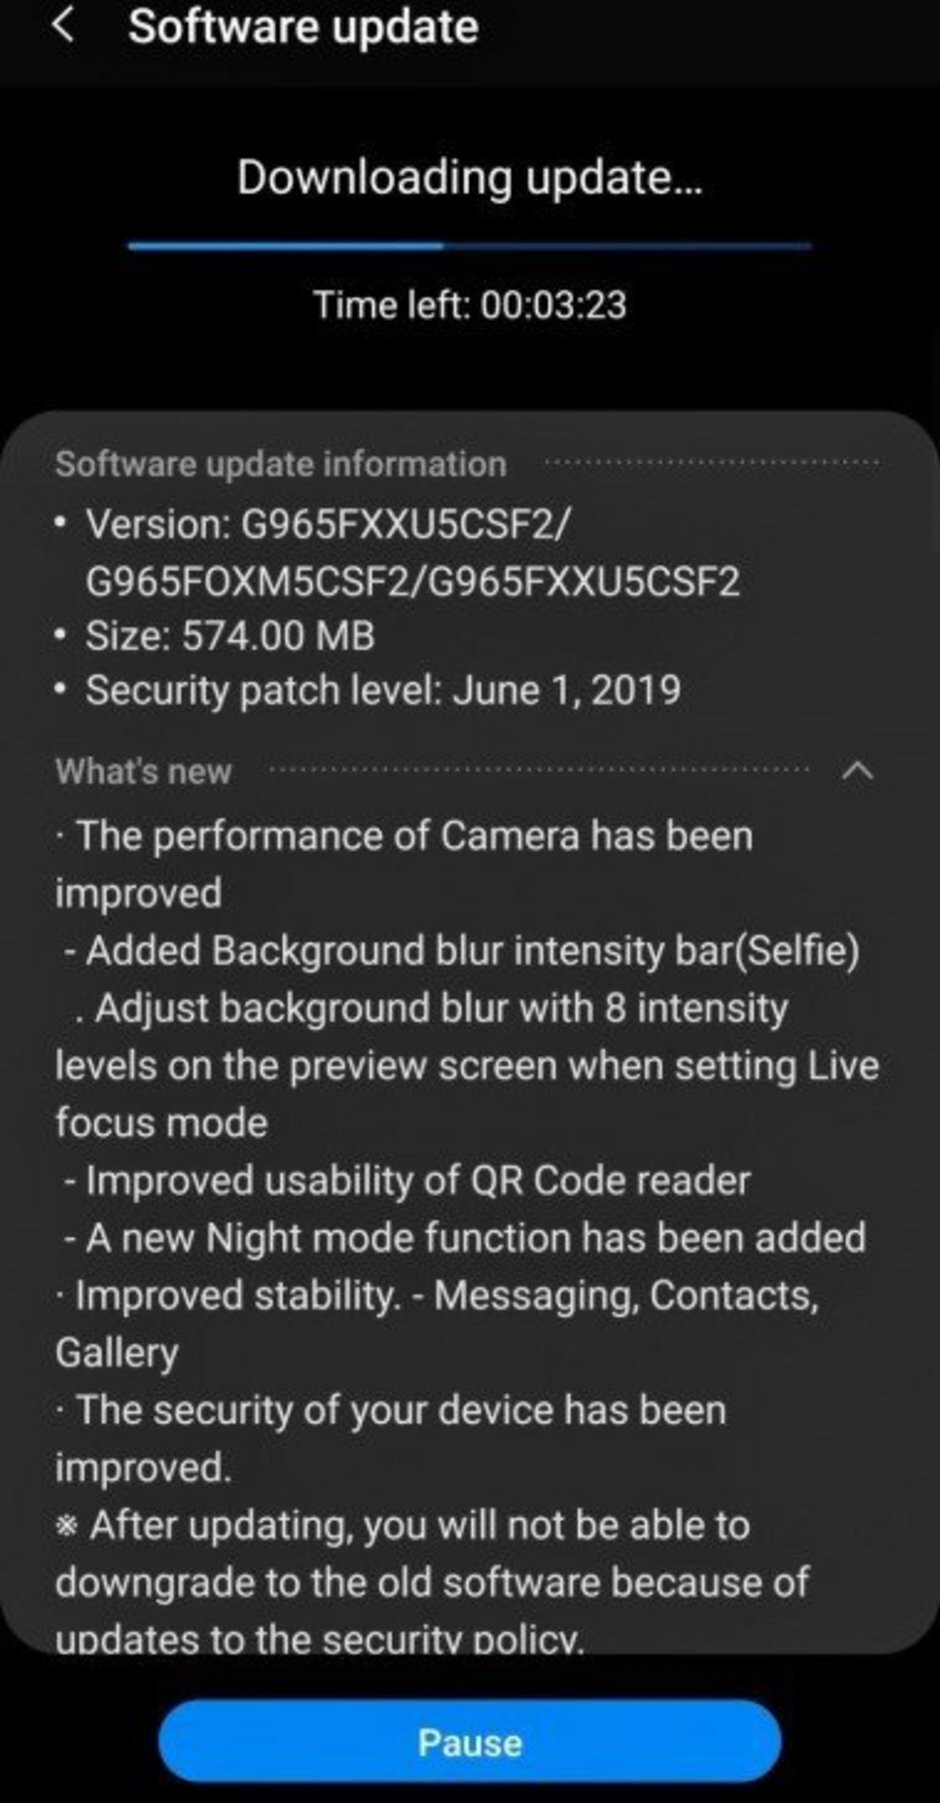 Samsung Galaxy S9 and S9+ update adds Night Mode function, other improvements